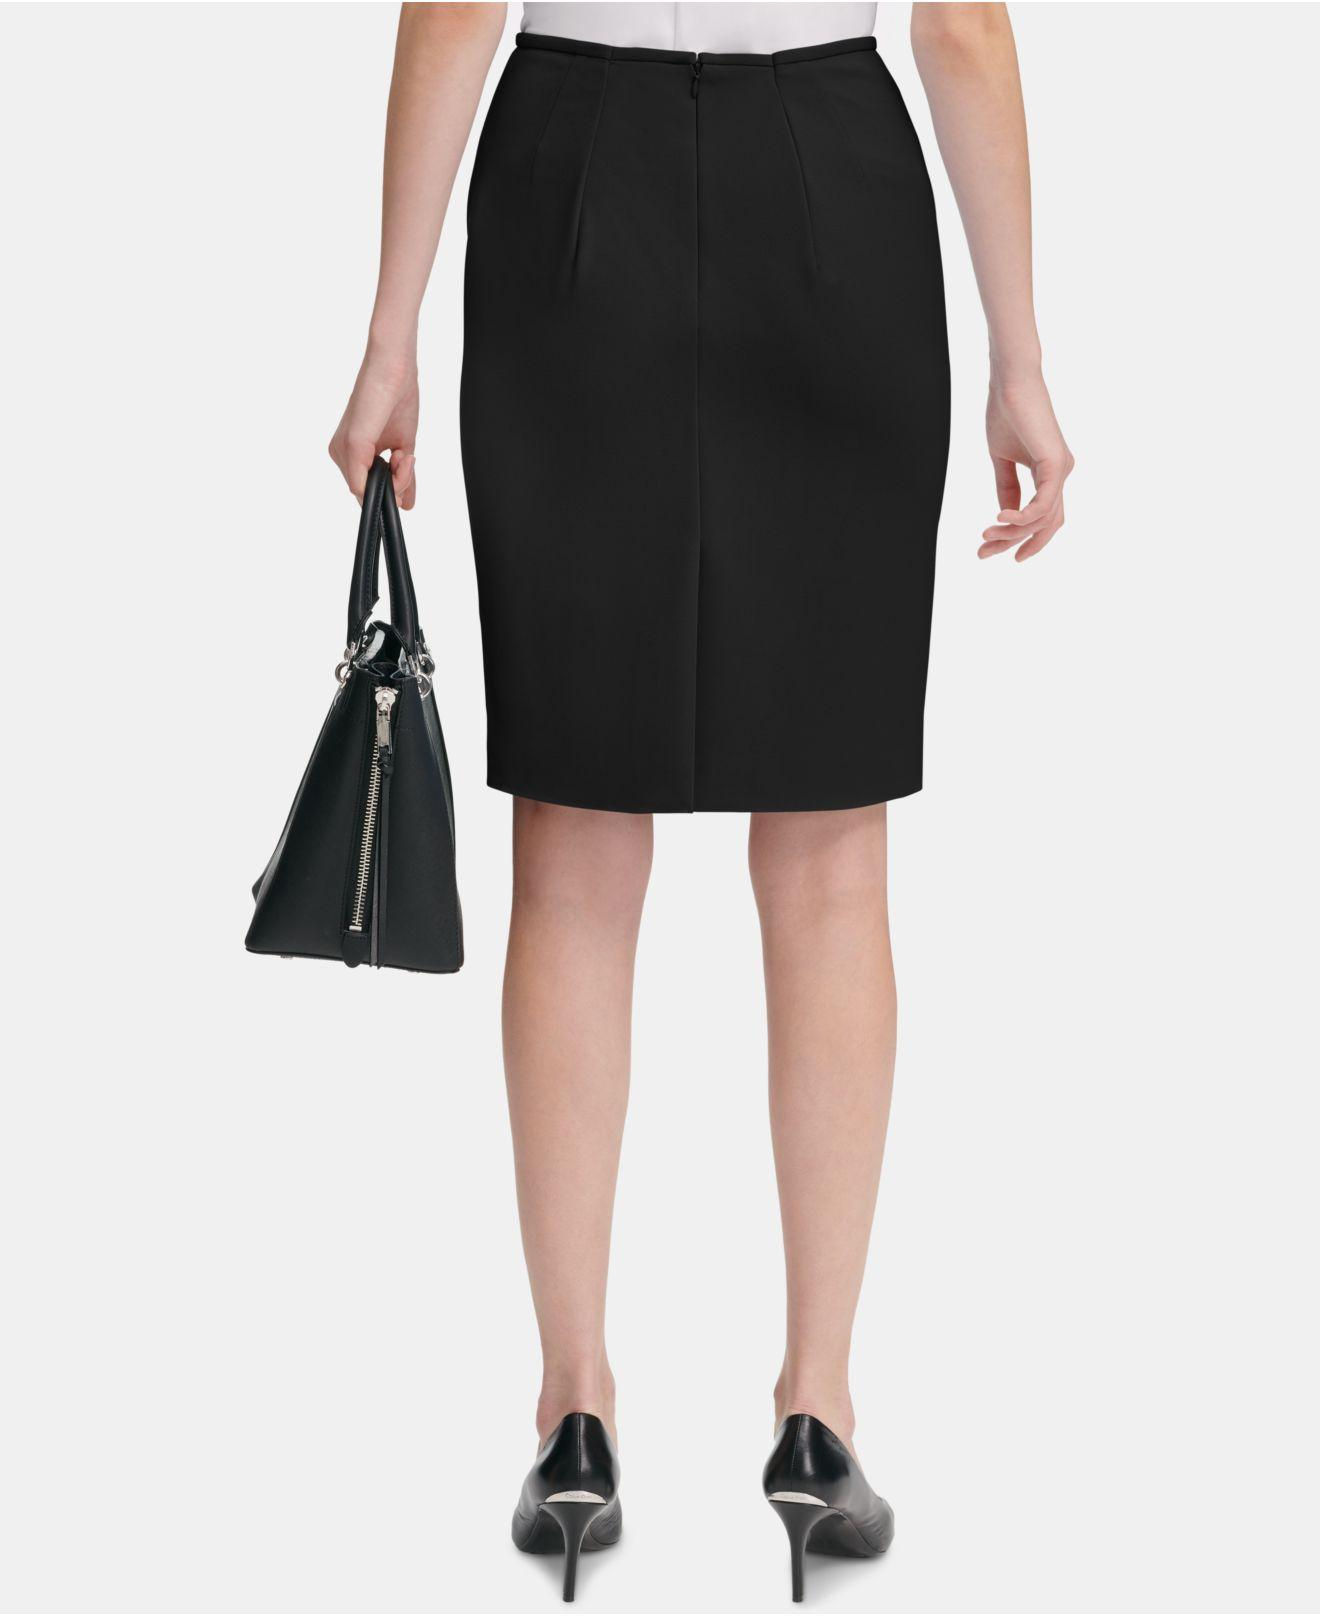 18dcdaabd5 Lyst - Calvin Klein Scuba Crepe Pencil Skirt in Black